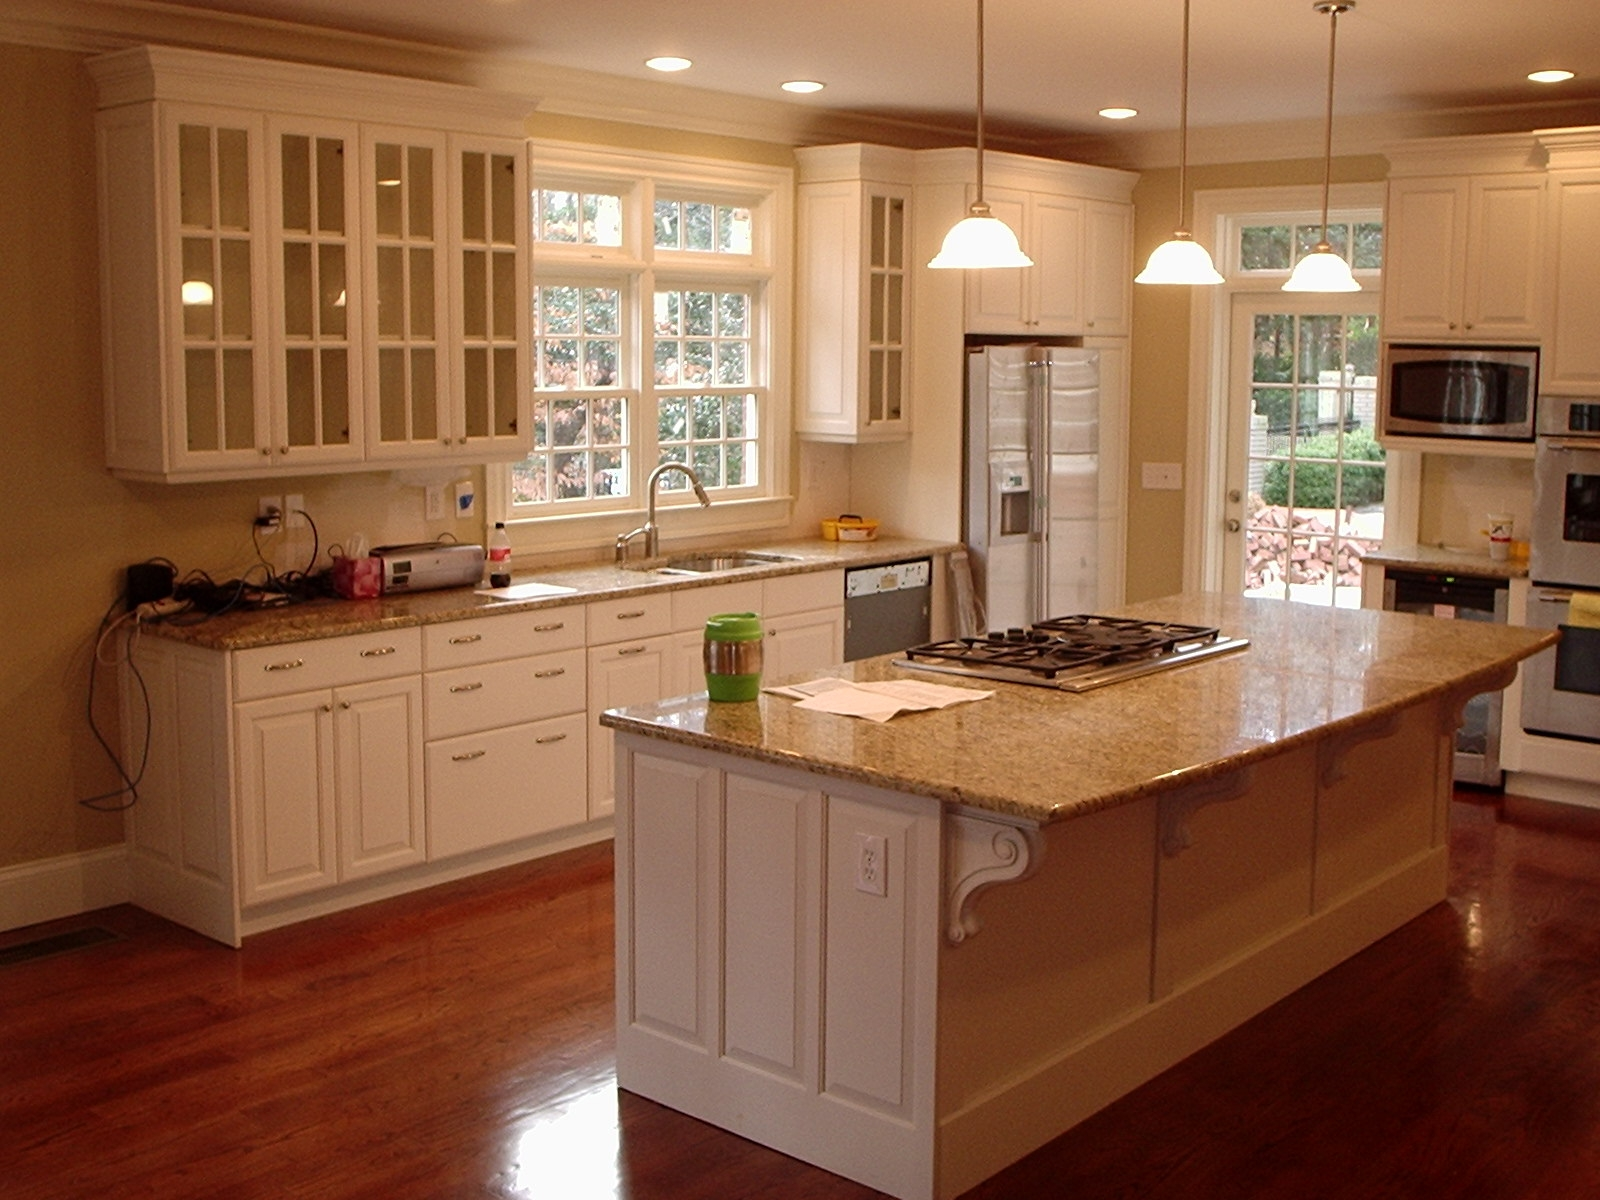 Permalink to Kitchen Cabinet Design Ideas